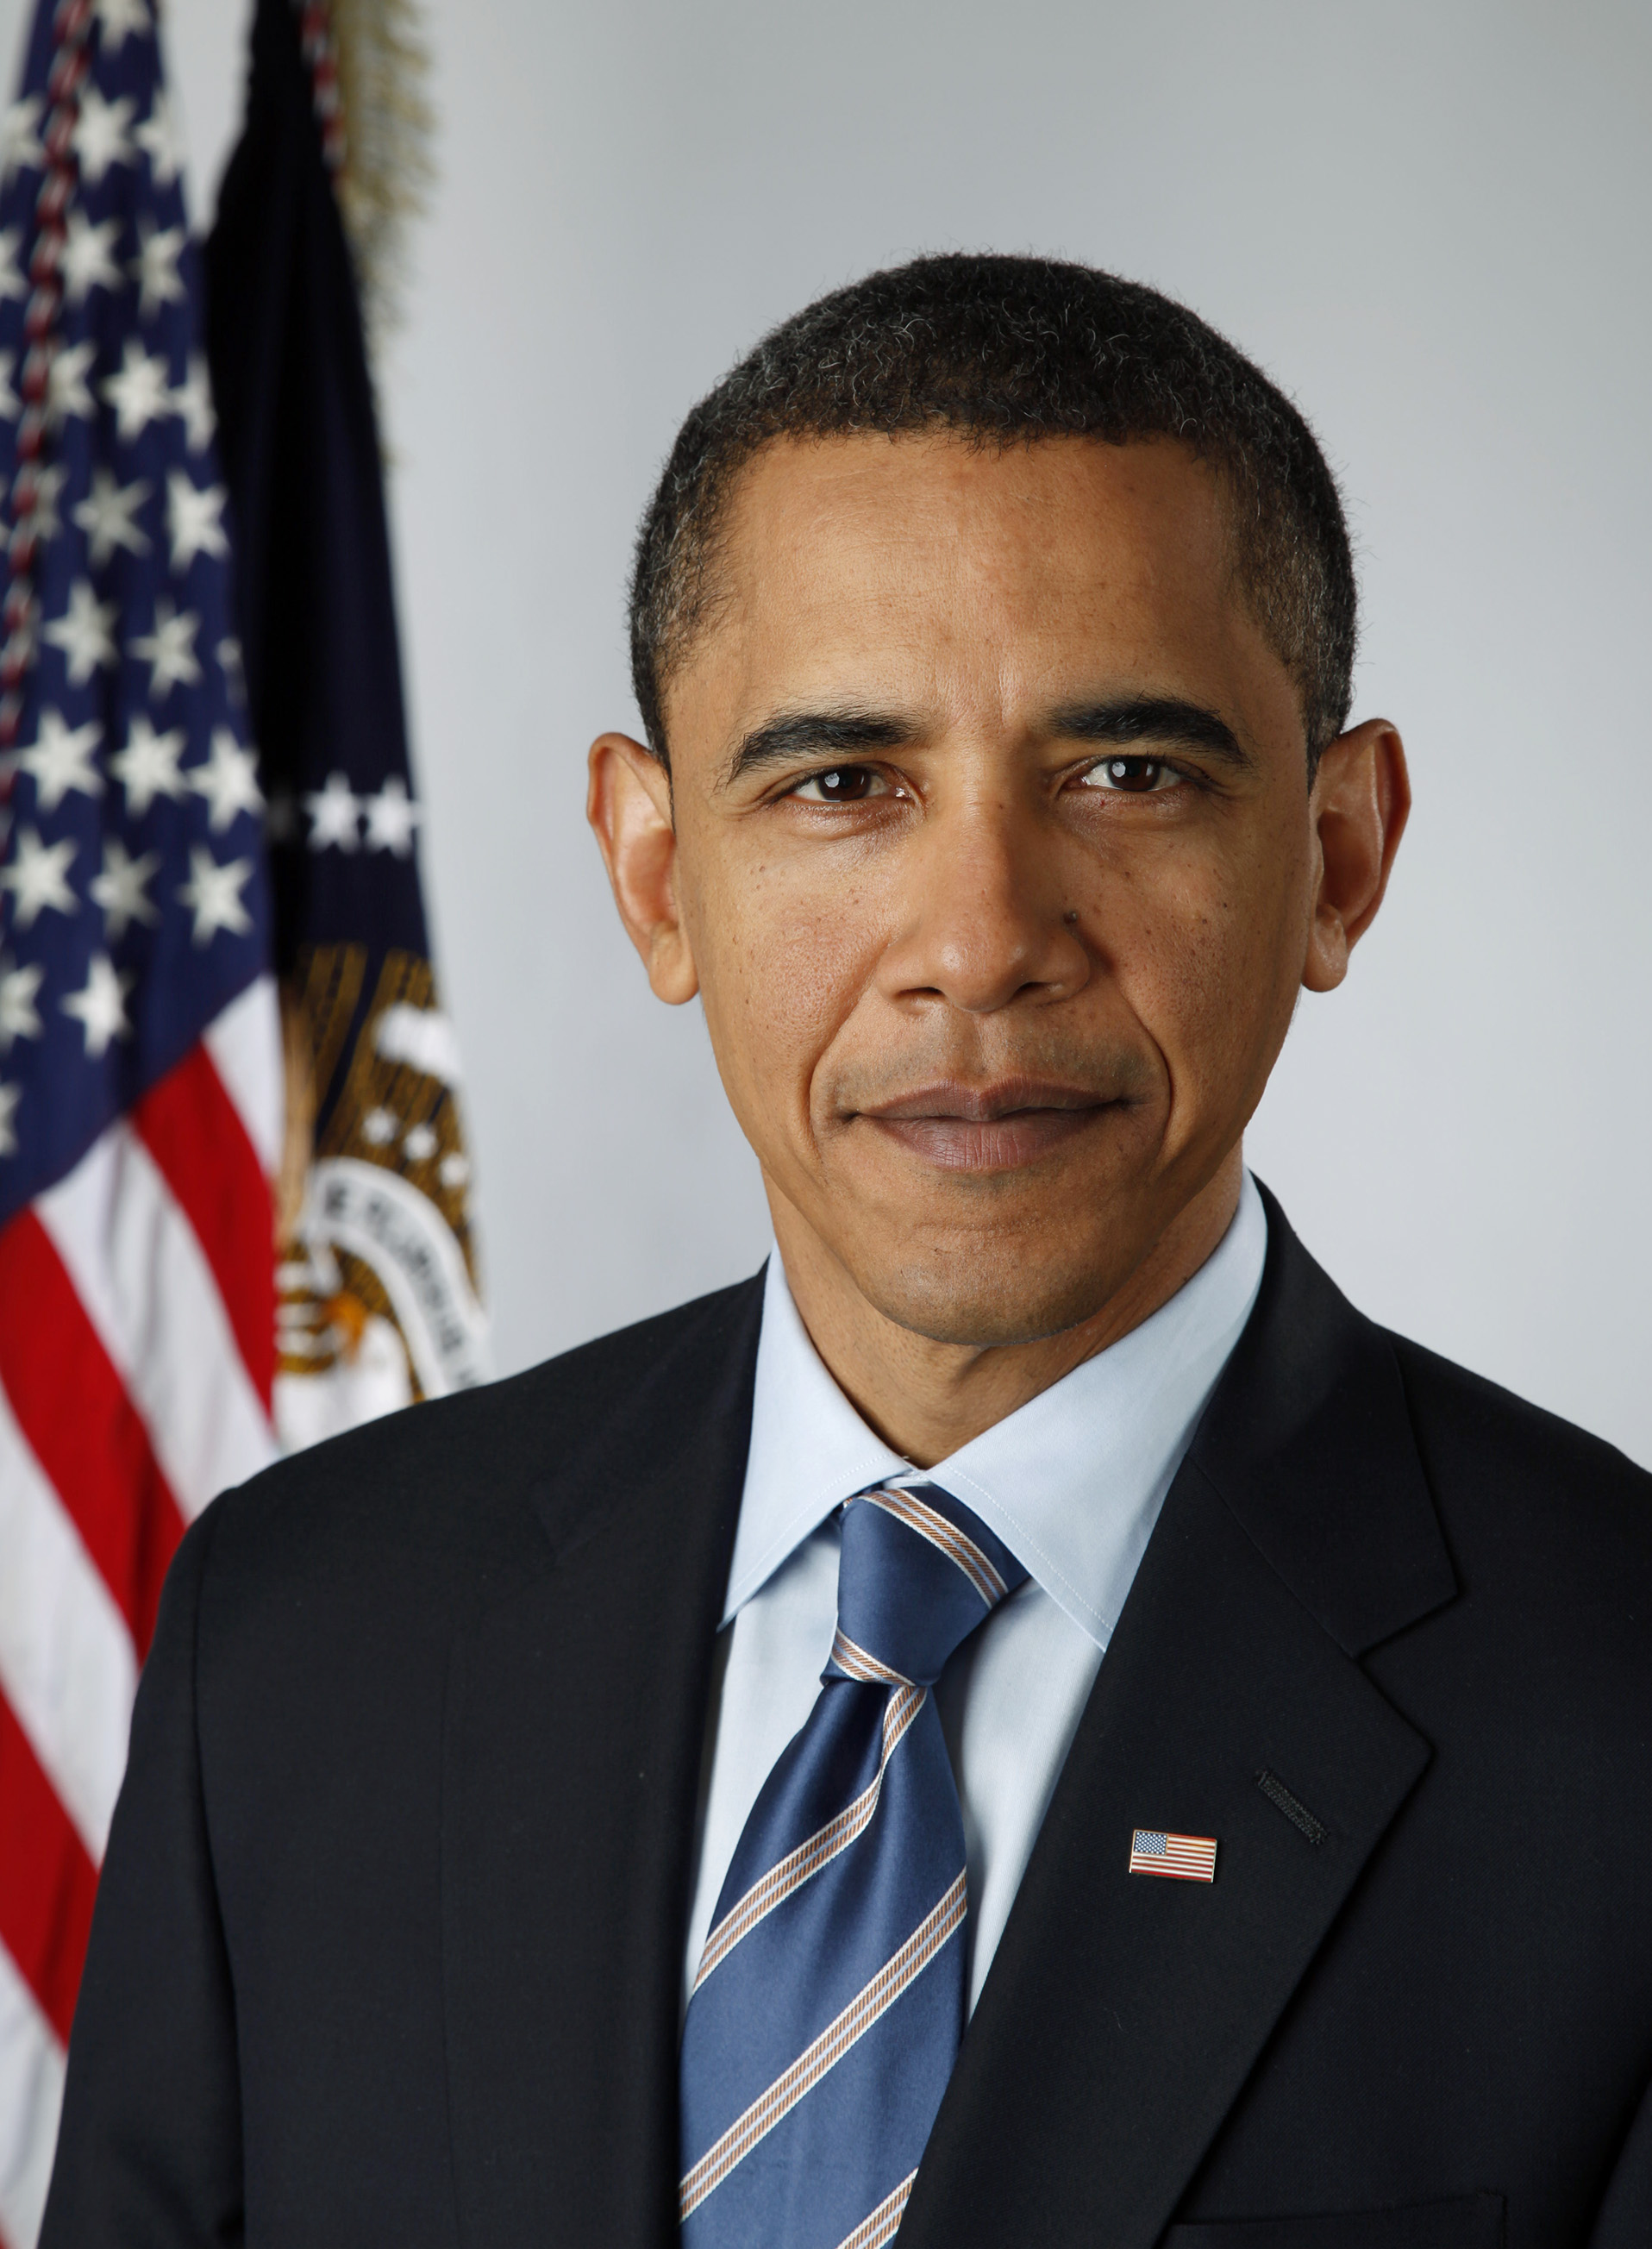 FileOfficial portrait of Barack Obamajpg Wikimedia Commons